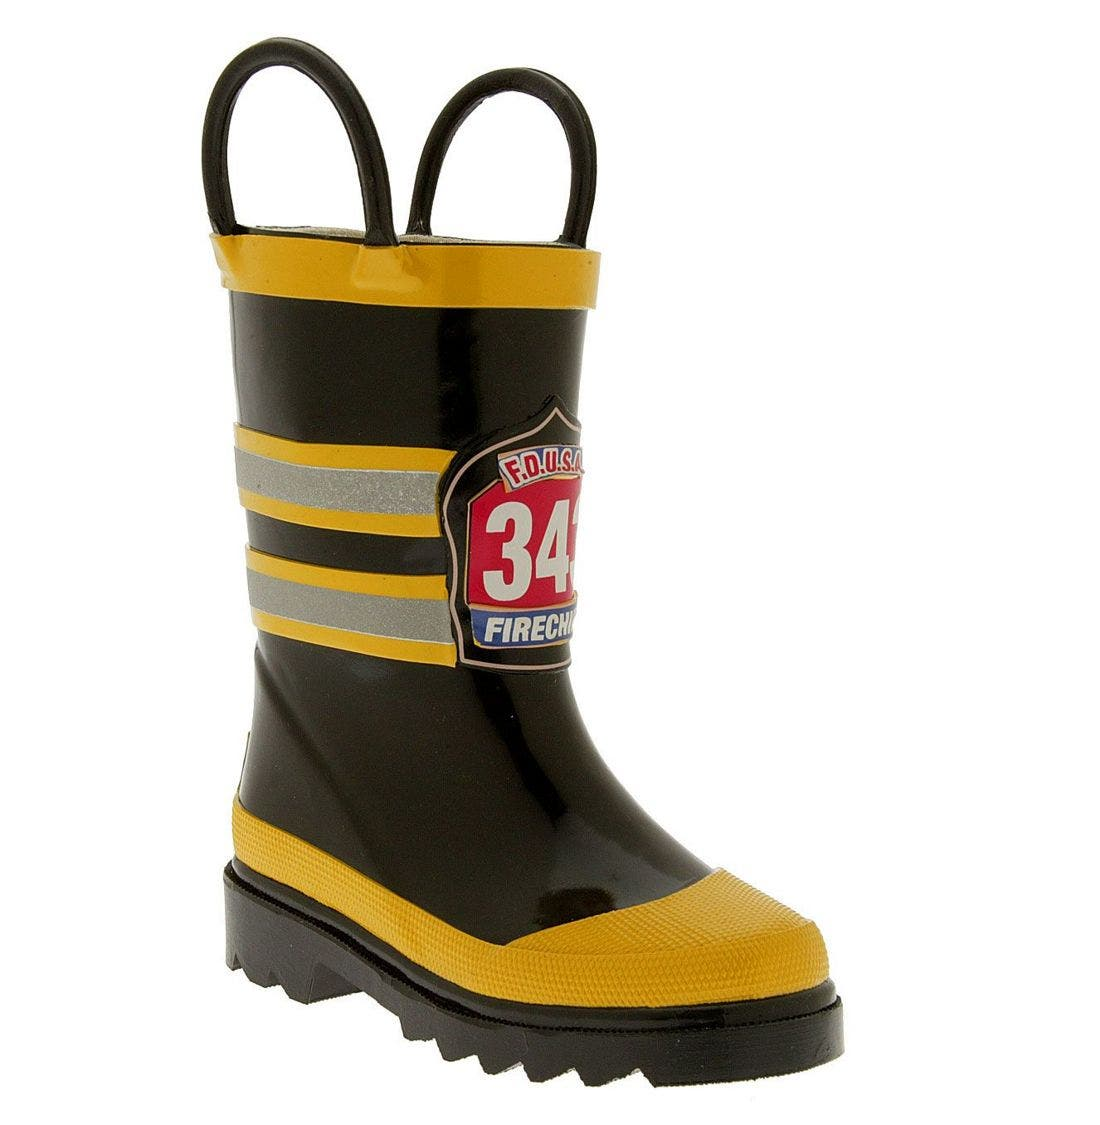 Alternate Image 1 Selected - Western Chief 'Fireman' Rain Boot (Walker, Toddler, Little Kid & Big Kid)